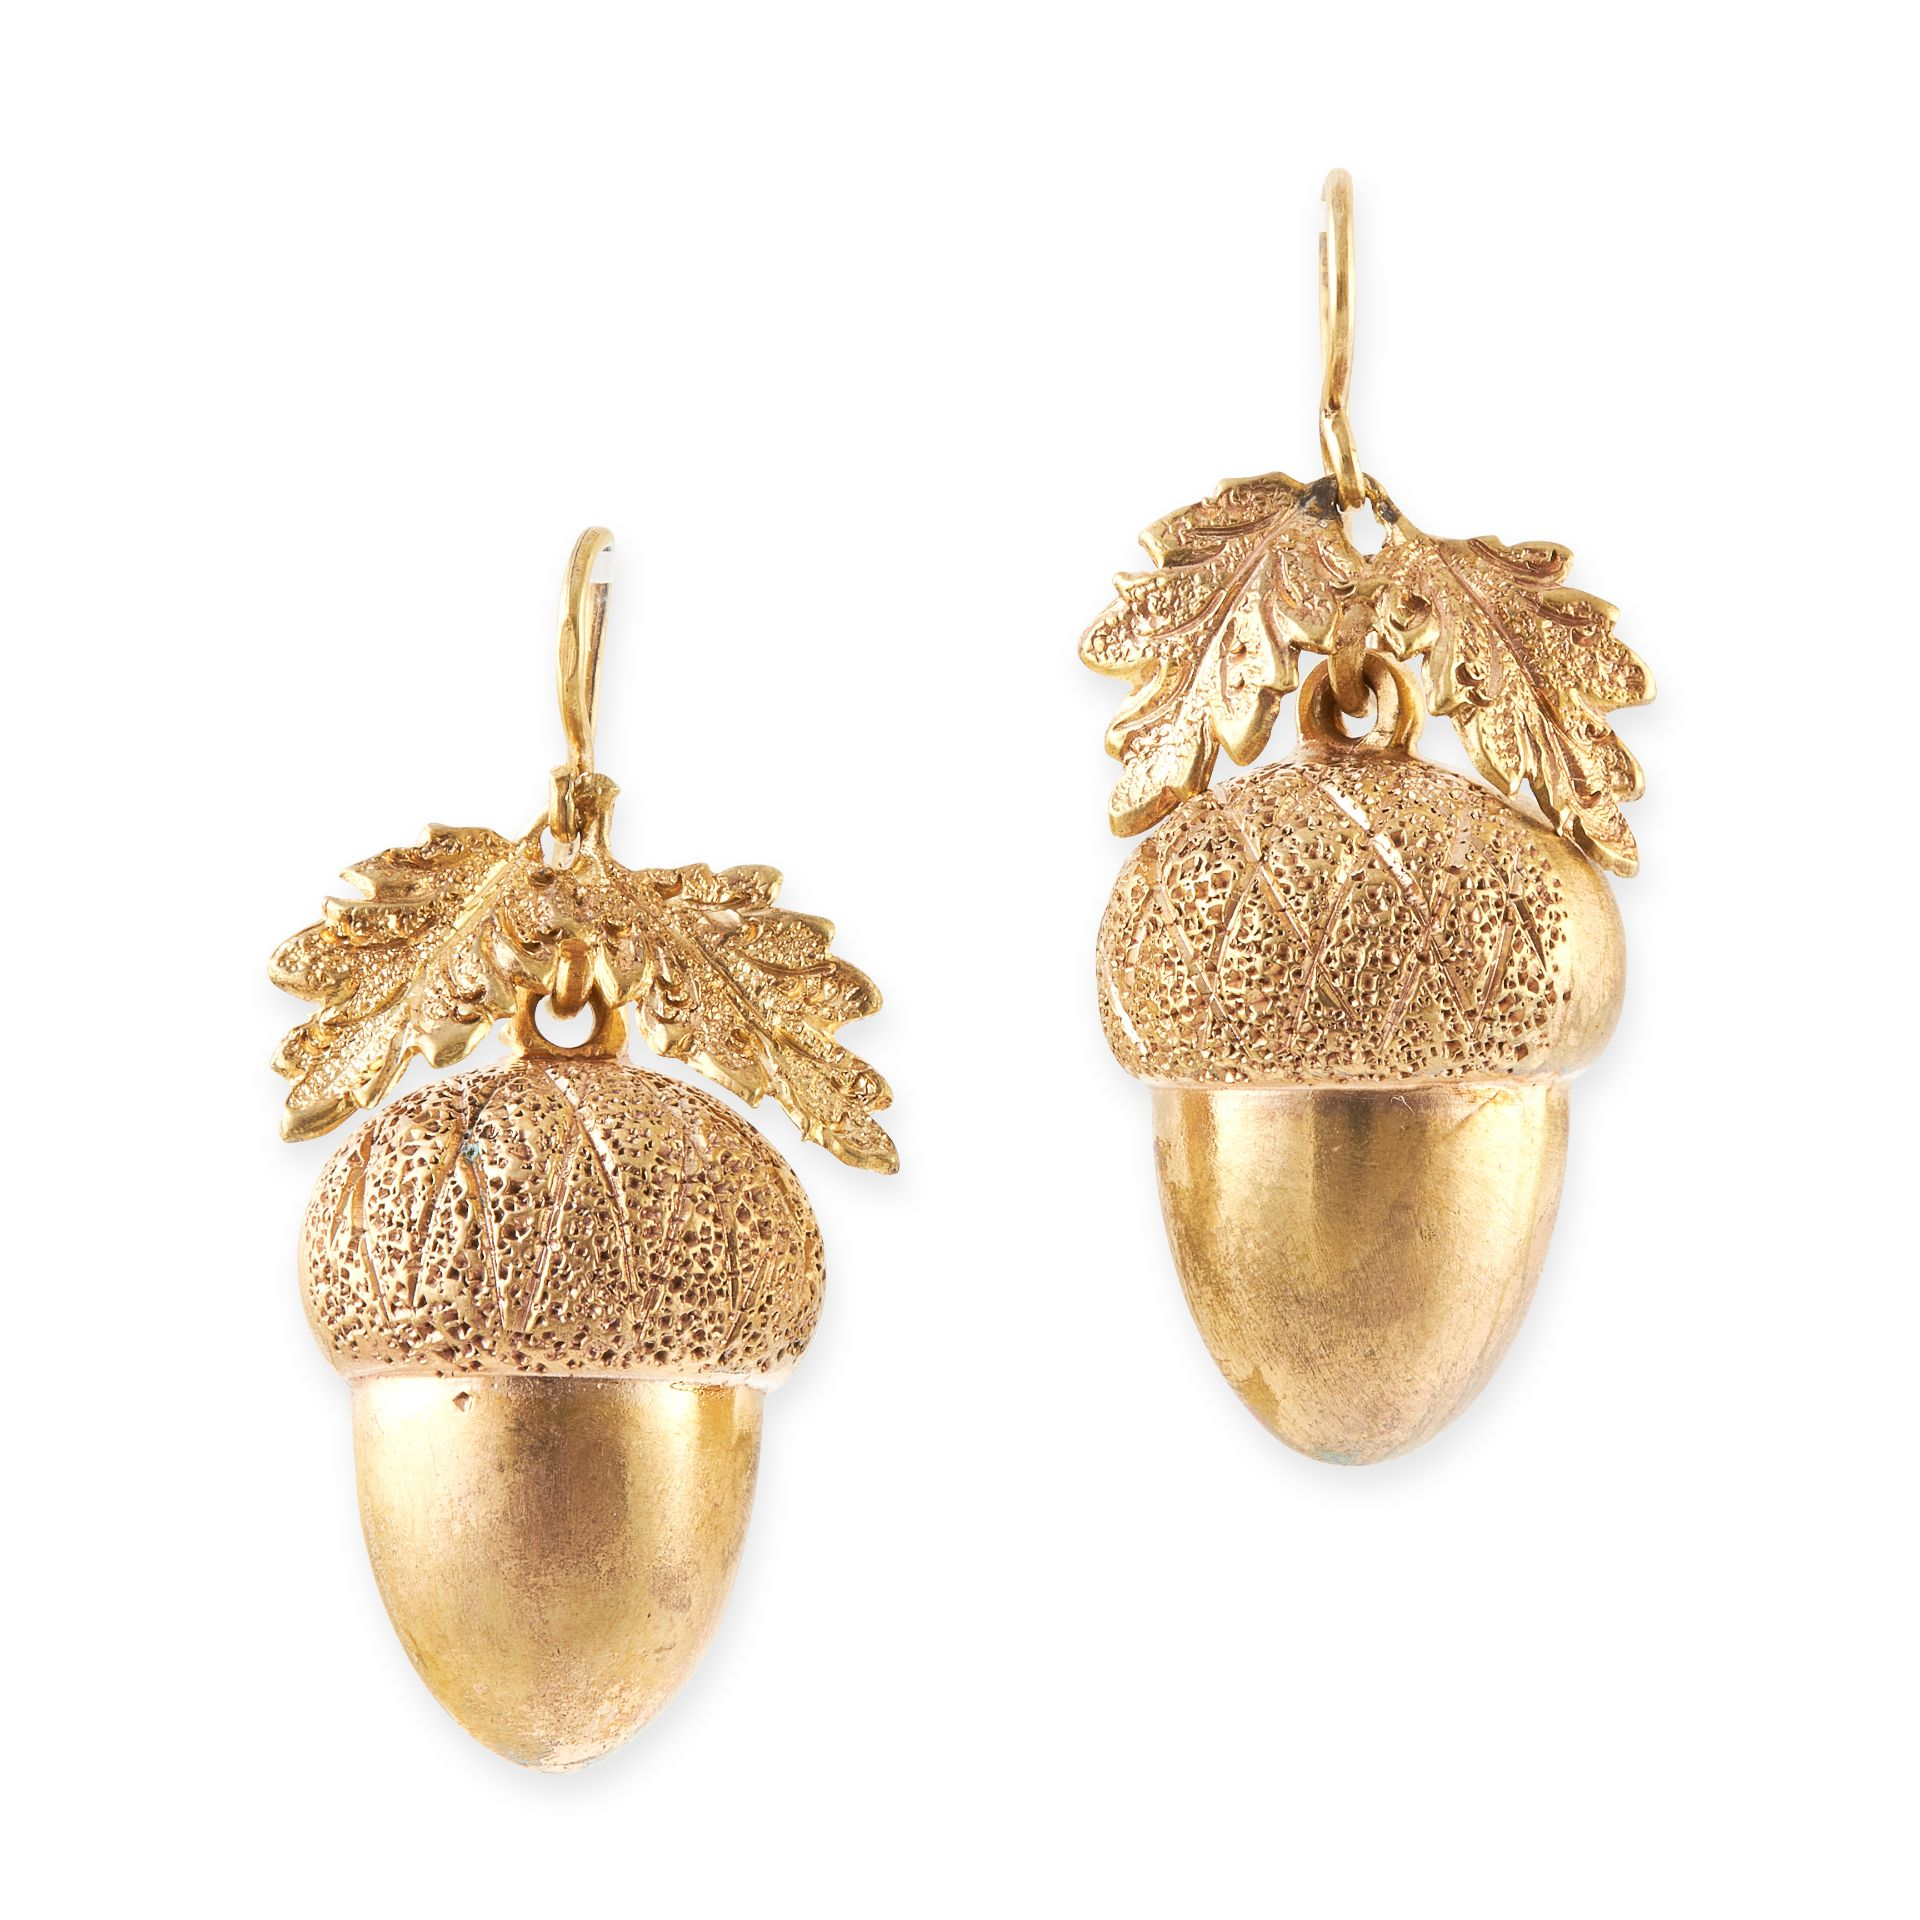 A PAIR OF ANTIQUE ACORN EARRINGS, 19TH CENTURY in yellow gold, each designed as an acorn,